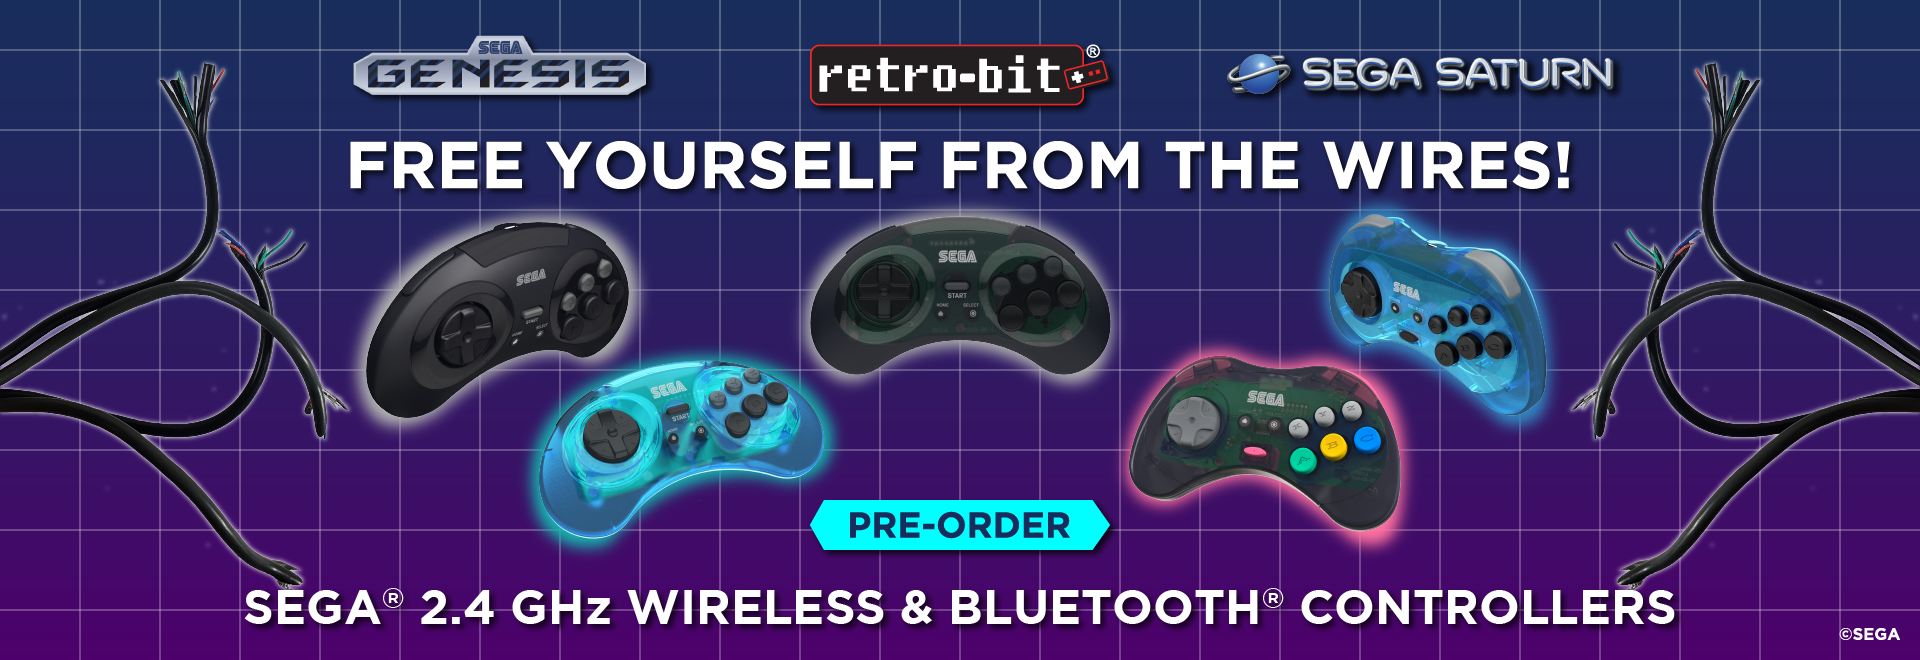 SEGA 2.4 GHz Wireless & Bluetooth Controllers Pre-Order